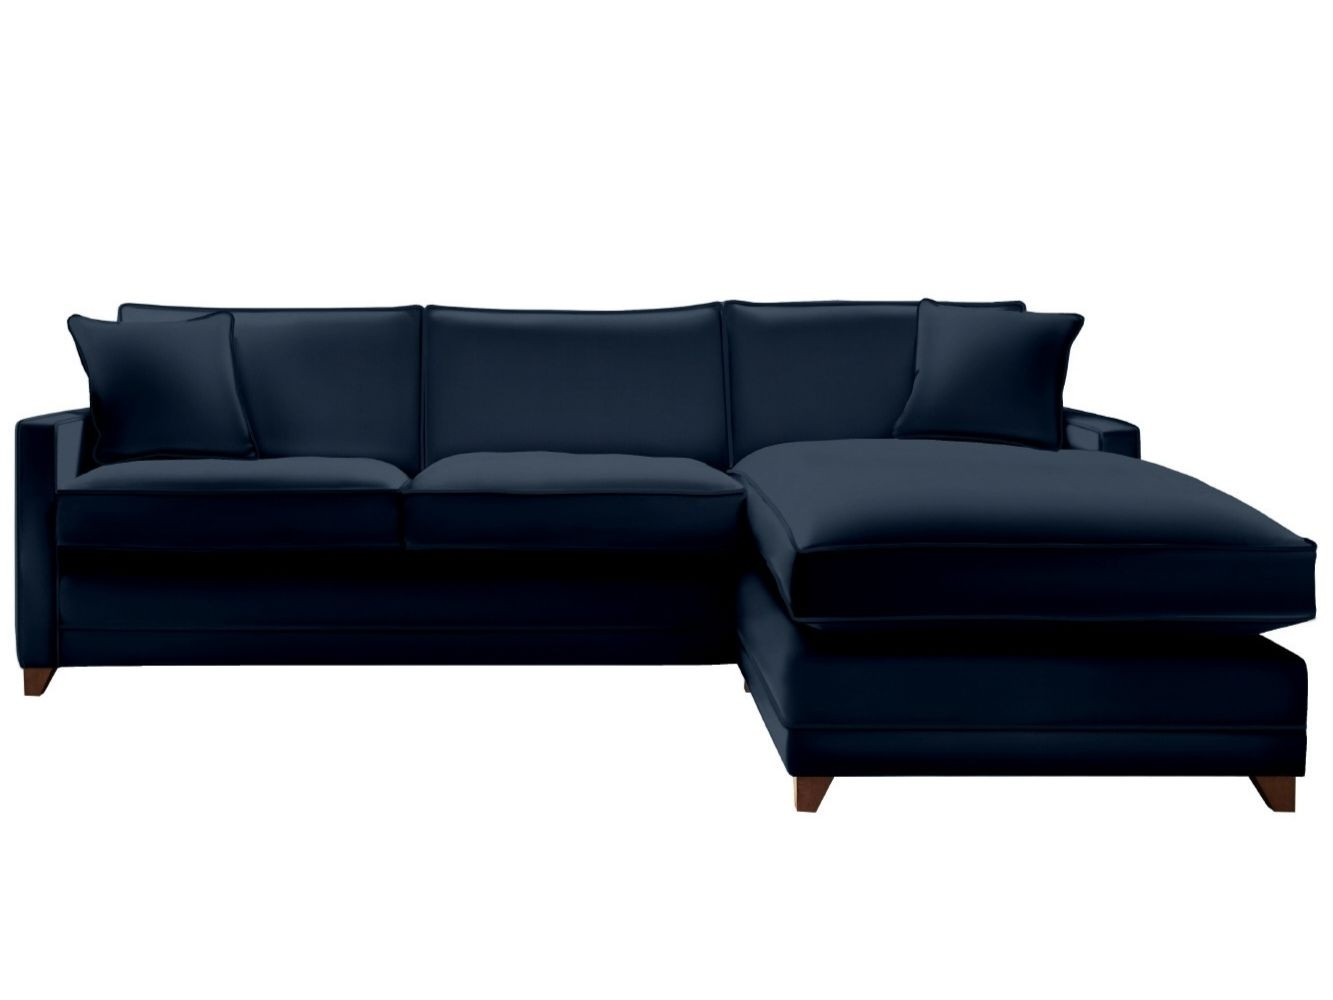 This is how I look in House Velvet Sapphire with siliconized hollow fibre seat cushions